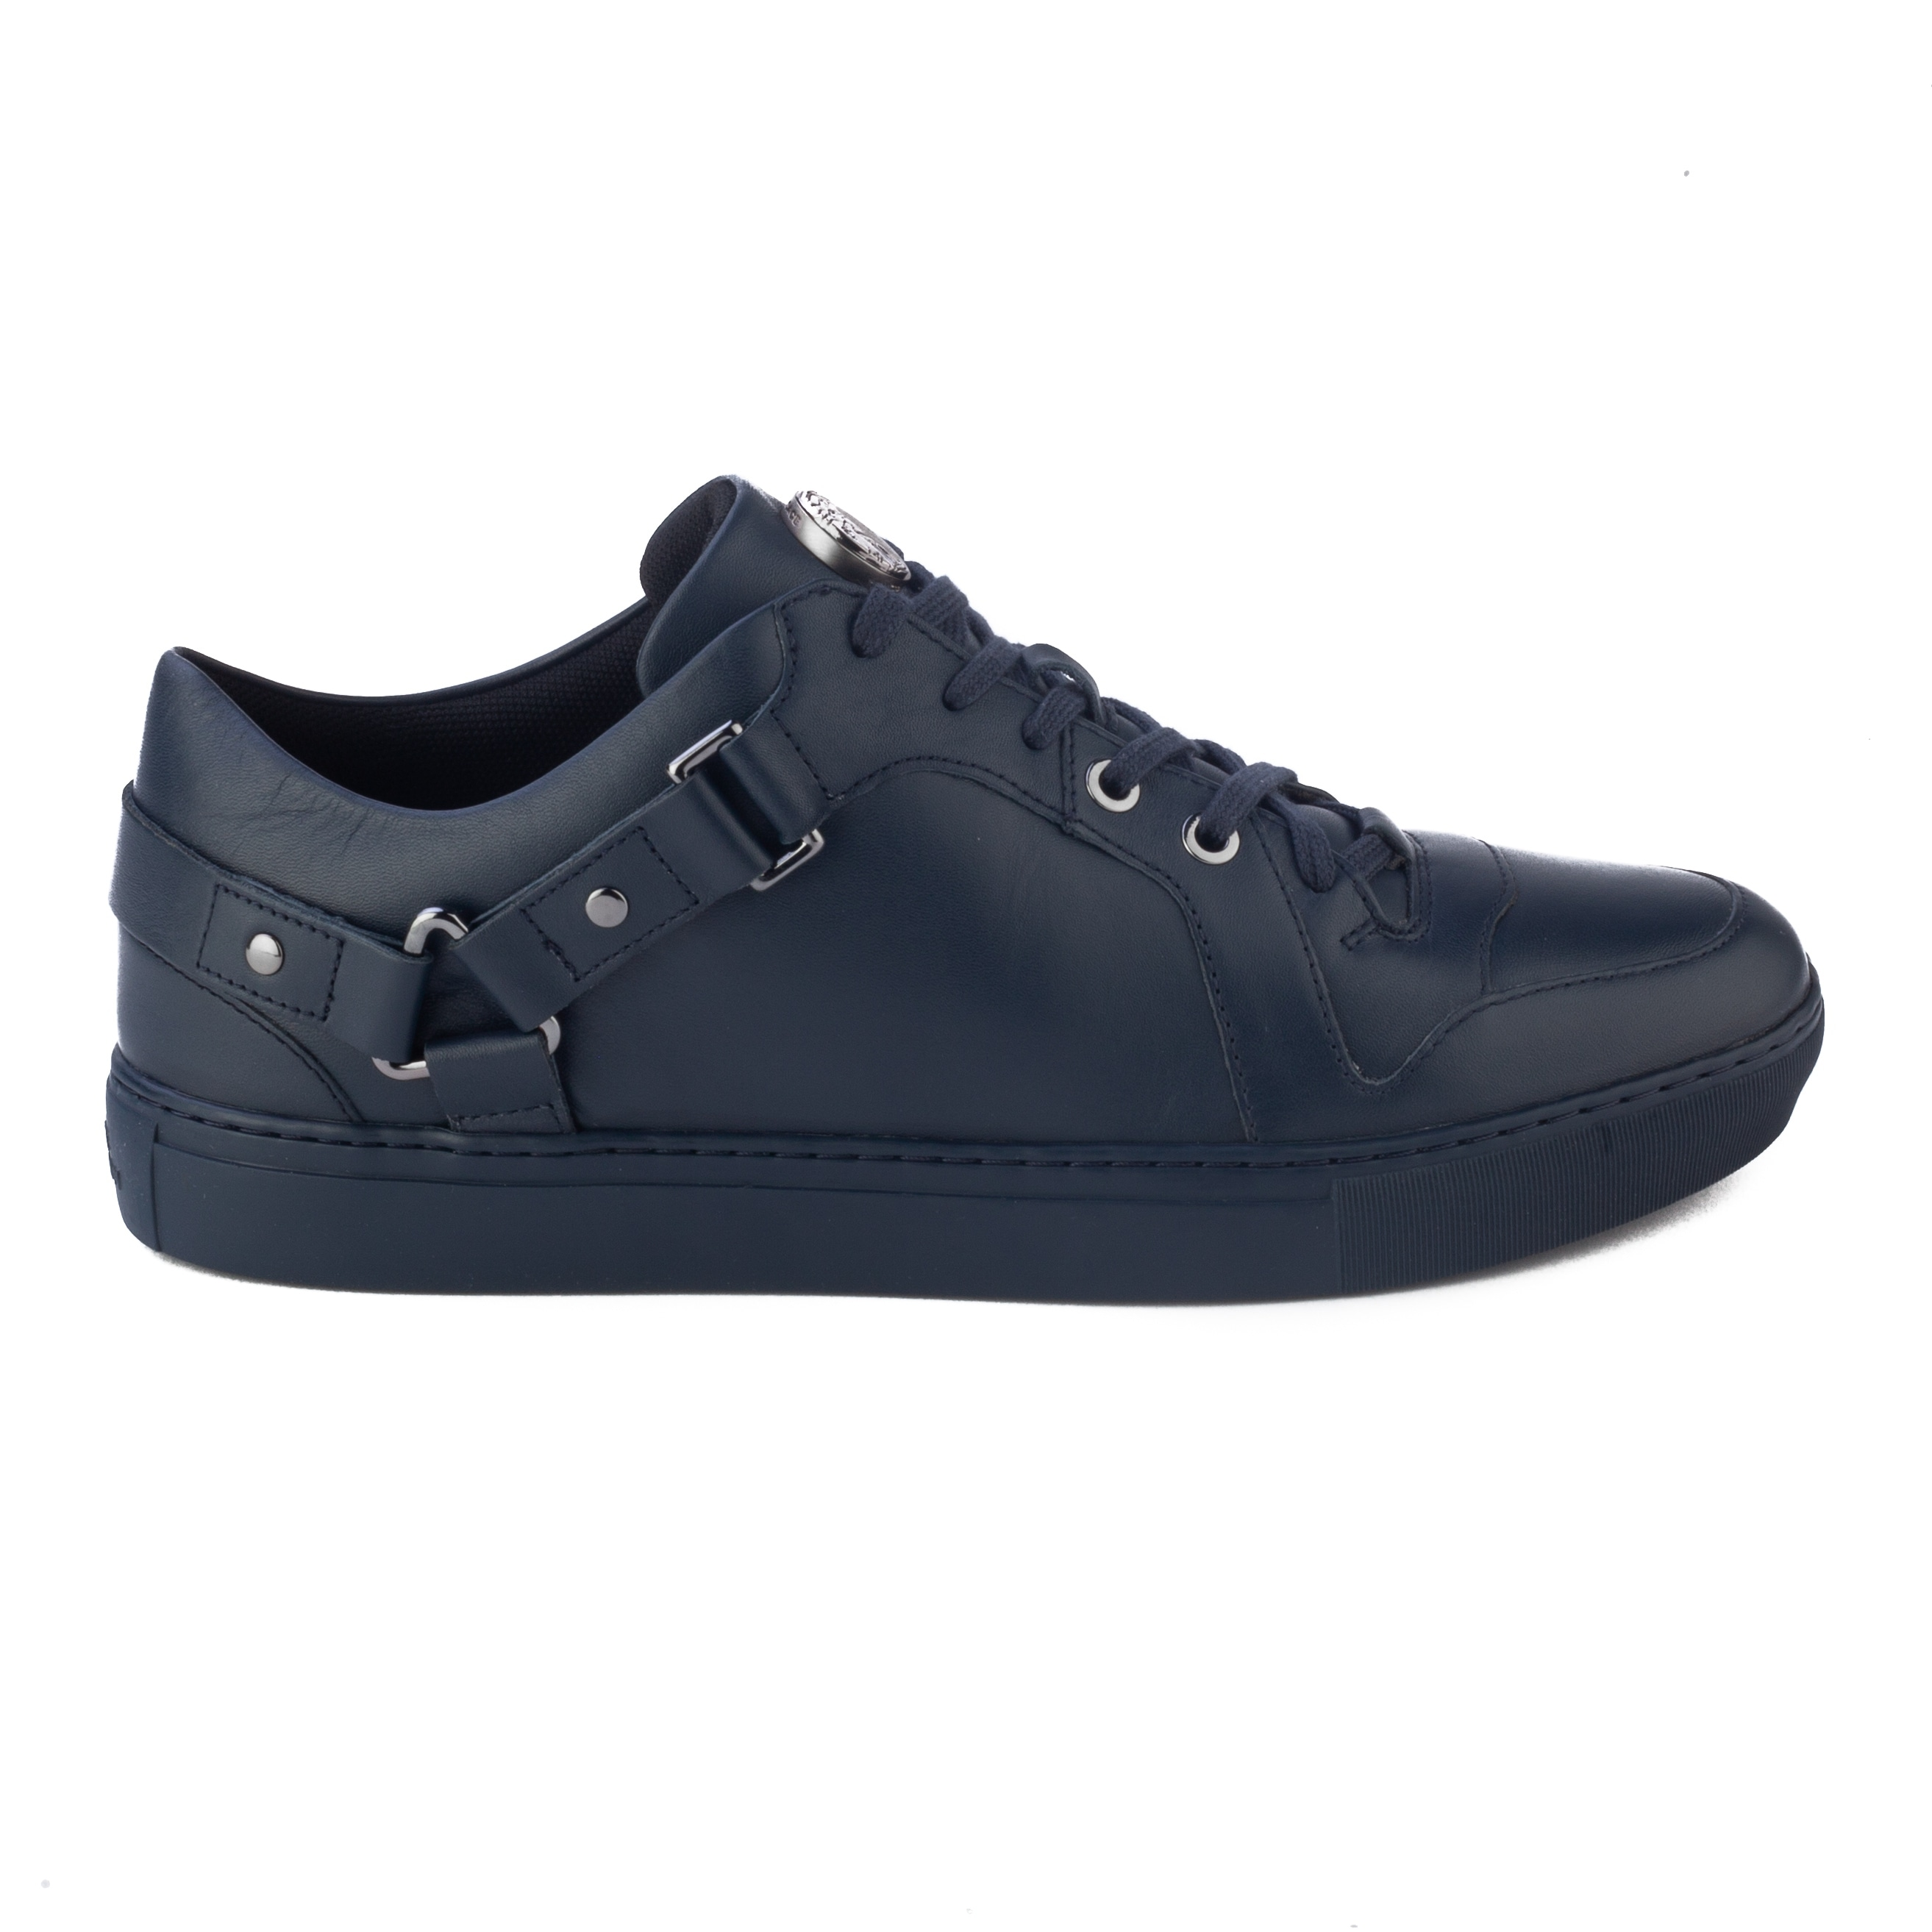 290f9c22165b Shop Versace Collection Men s Leather Low Top Medusa Sneaker Shoes Navy  Blue - Free Shipping Today - Overstock - 23005019